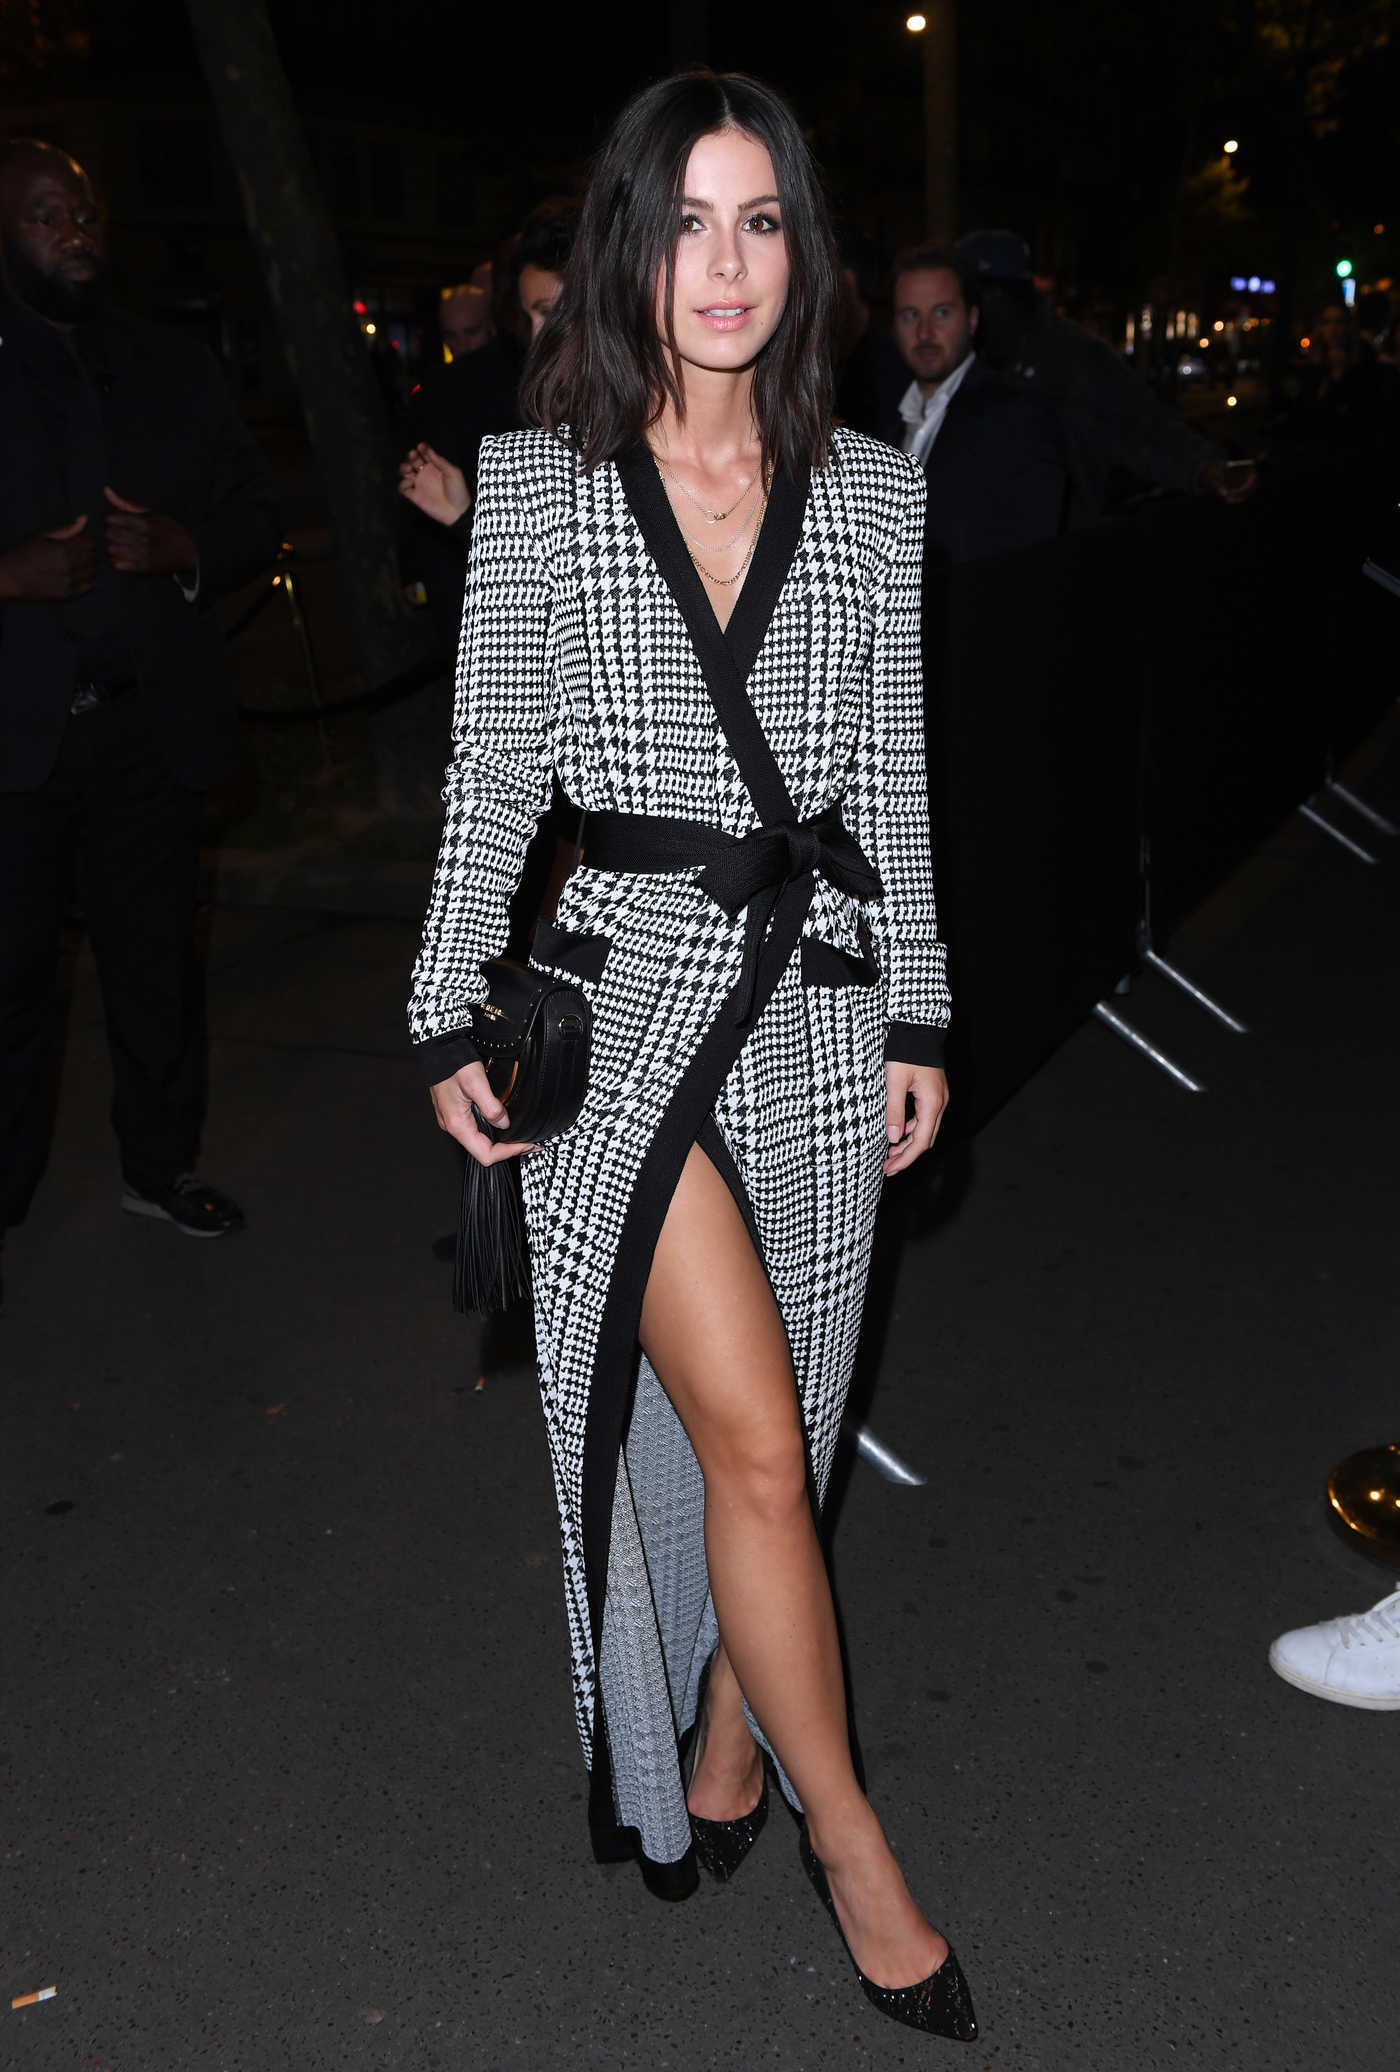 Lena Meyer-Landrut Arrives at the L'Oreal X Balmain Party During Paris Fashion Week 09/28/2017